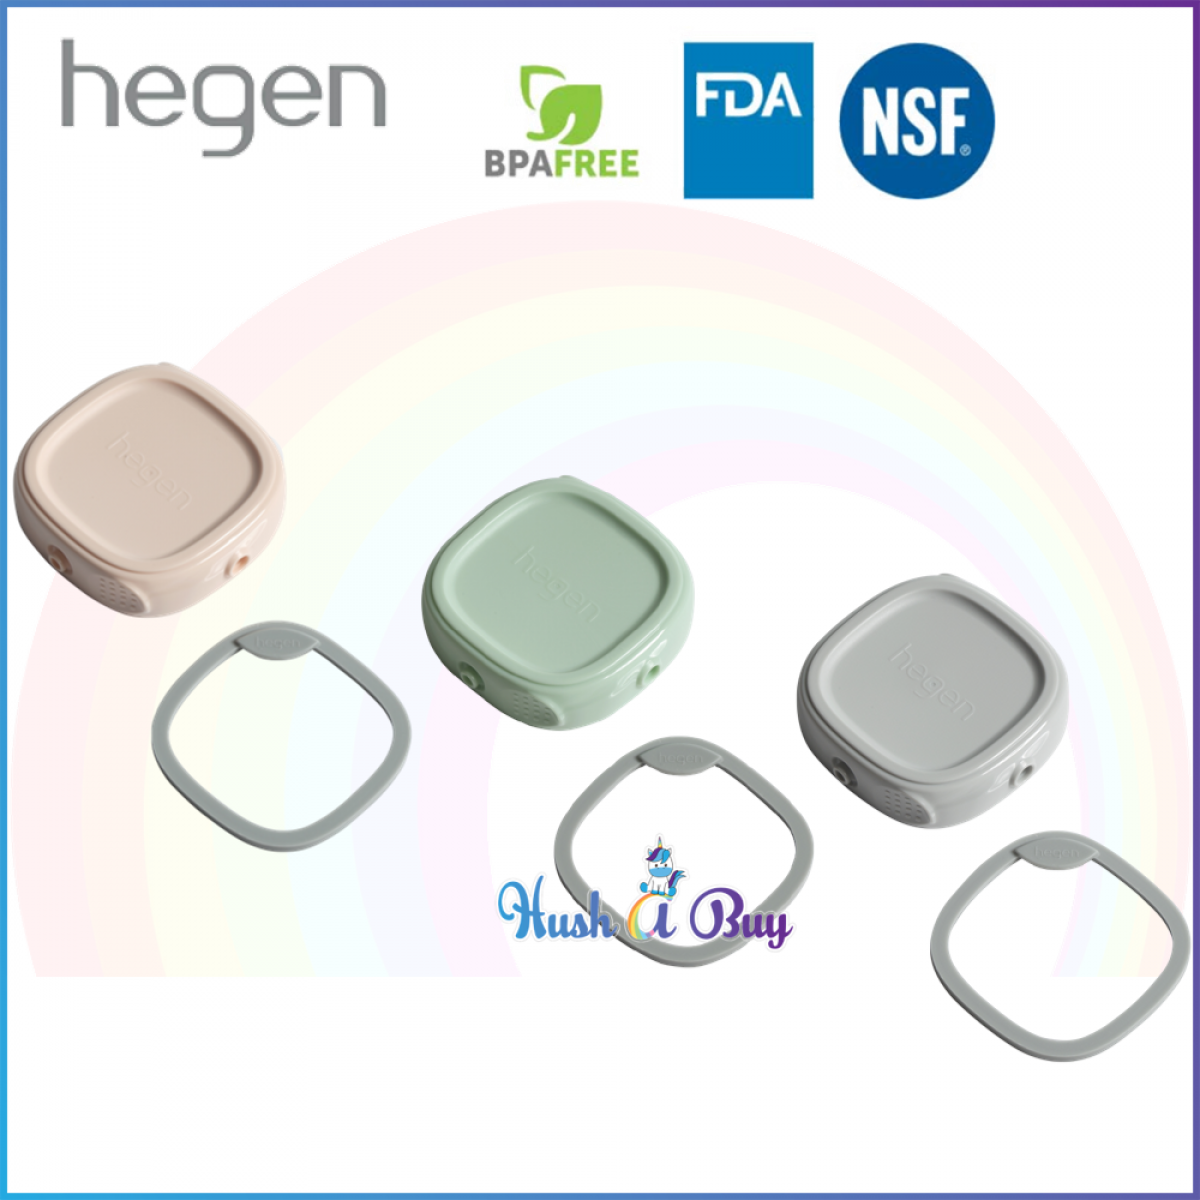 Hegen PCTO Breast Milk Storage Lid Single - Pink/ Grey/ Green